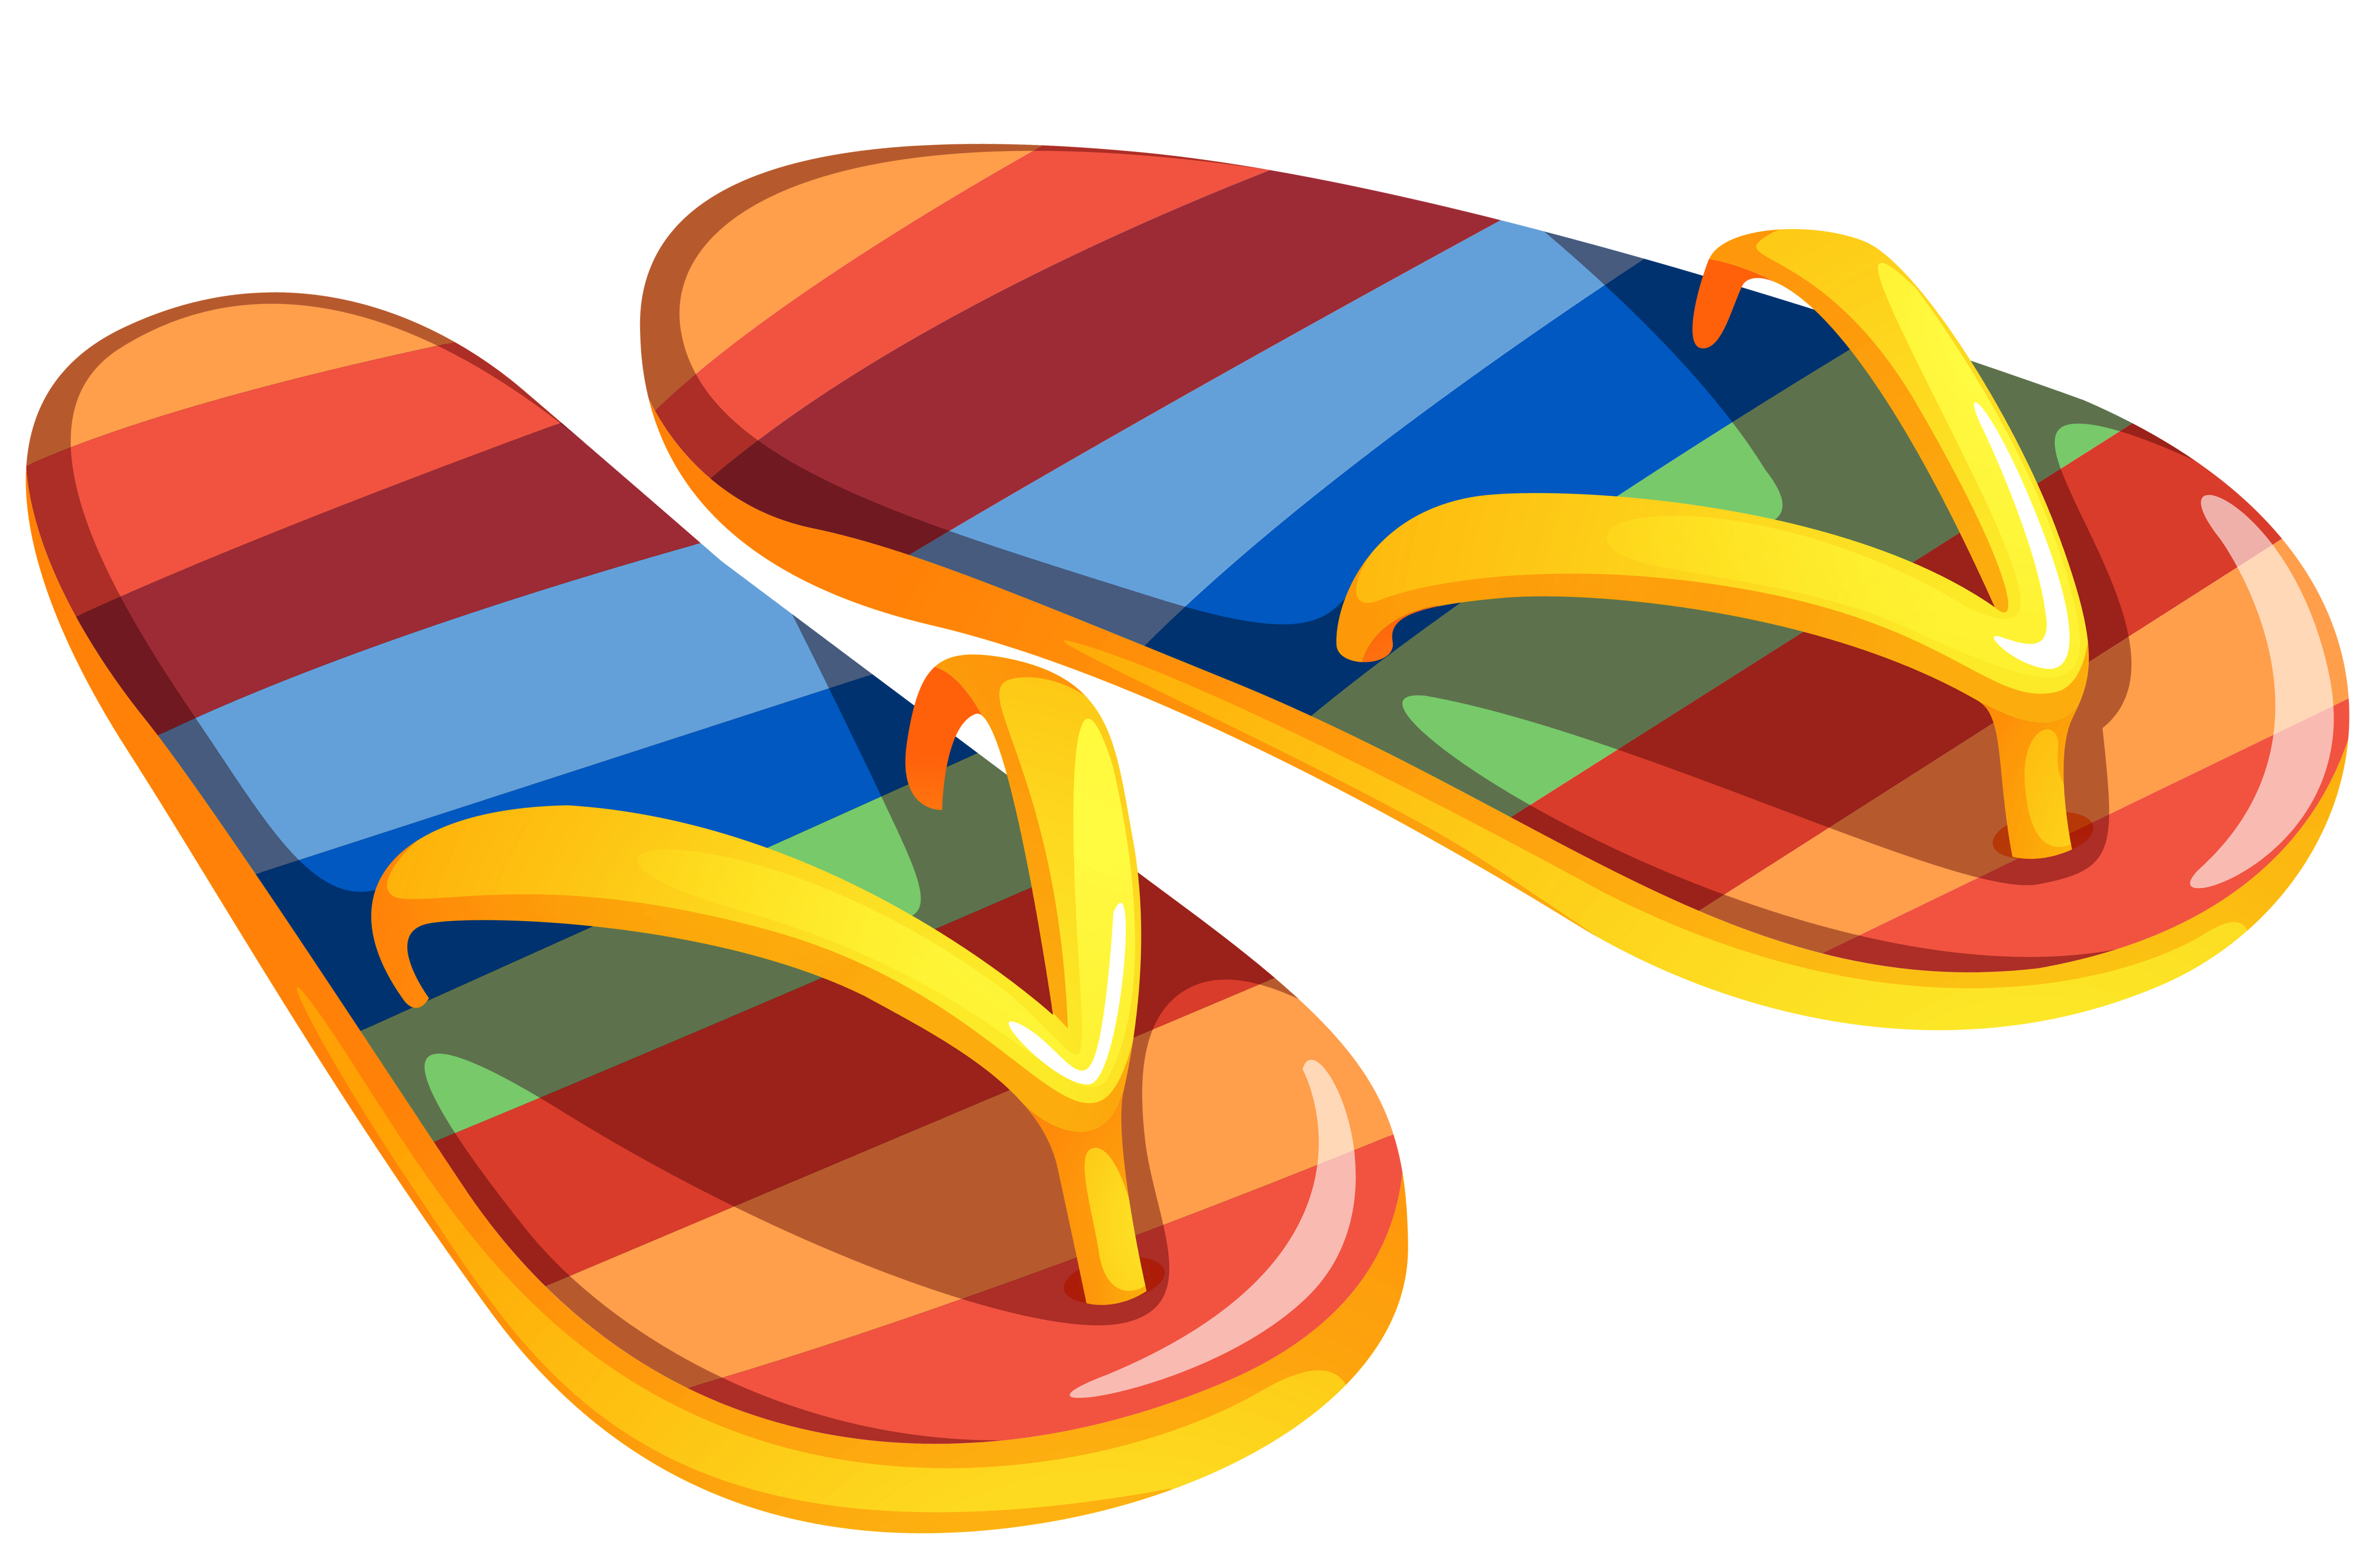 Free clipart images of flip flops clipart transparent stock Vector Blank Ticket Background Free Vector #354787 - Clipartimage.com clipart transparent stock